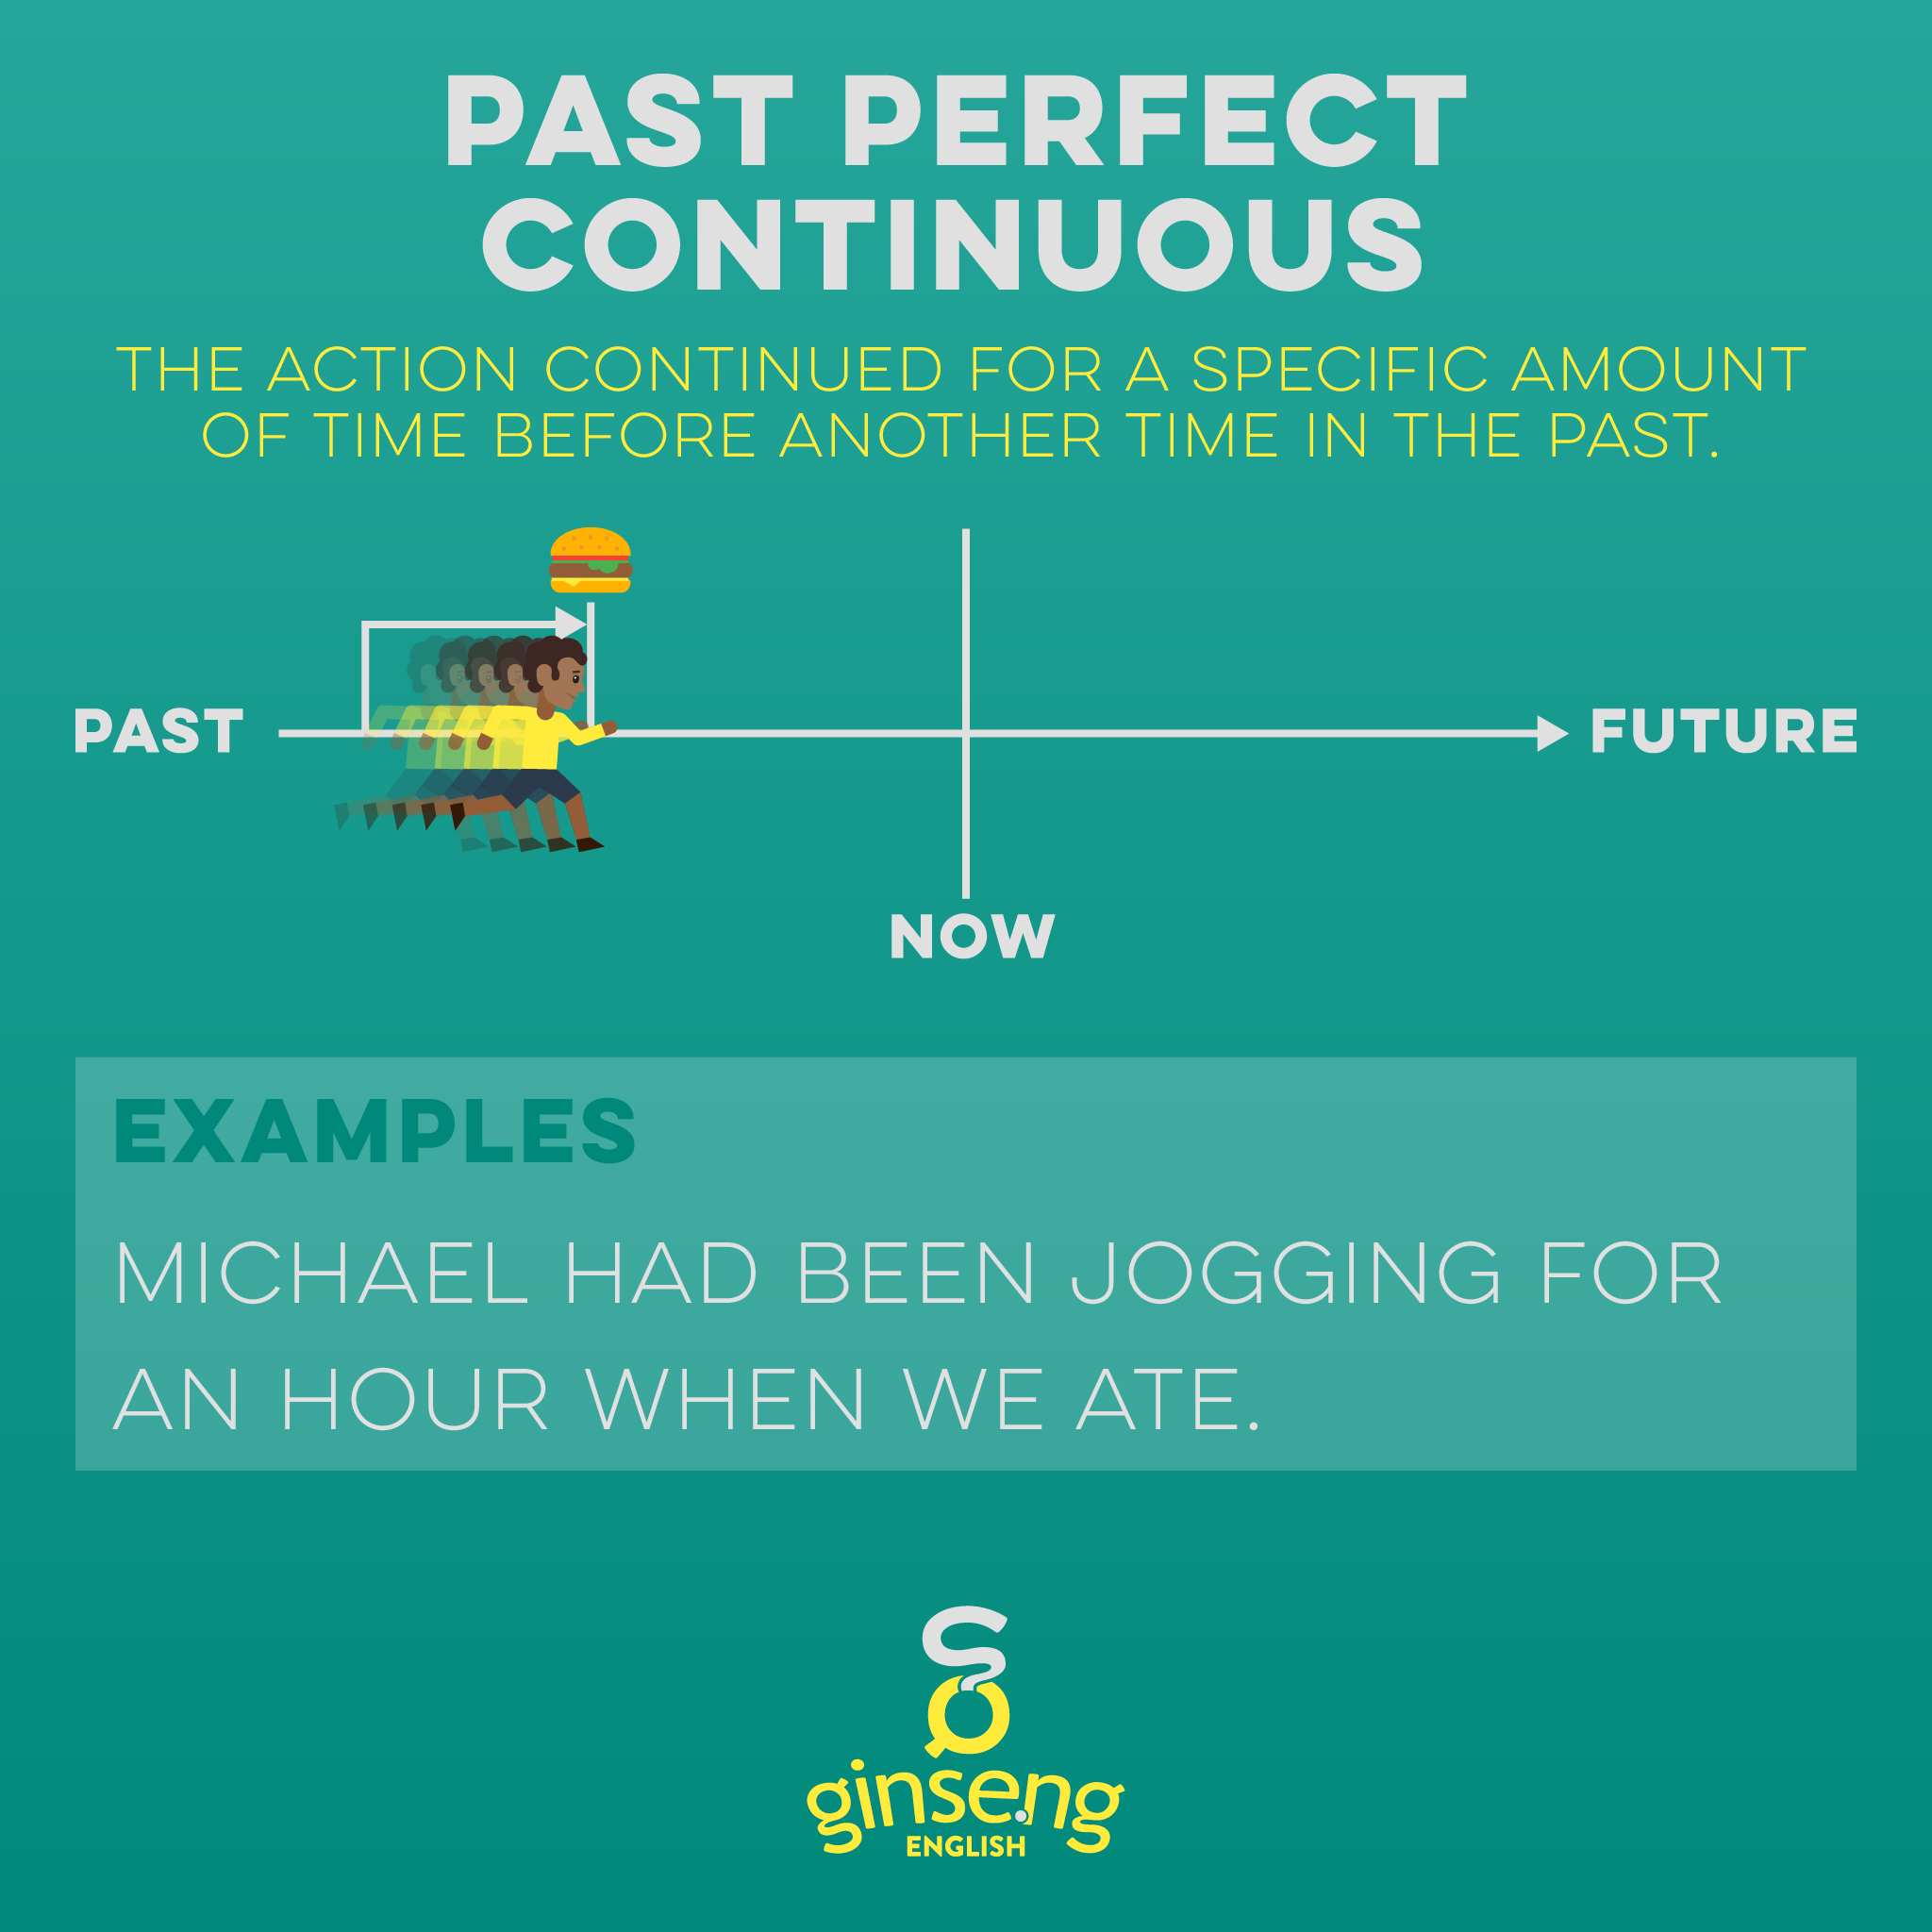 Chart for Past Perfect Continuous Tense in English